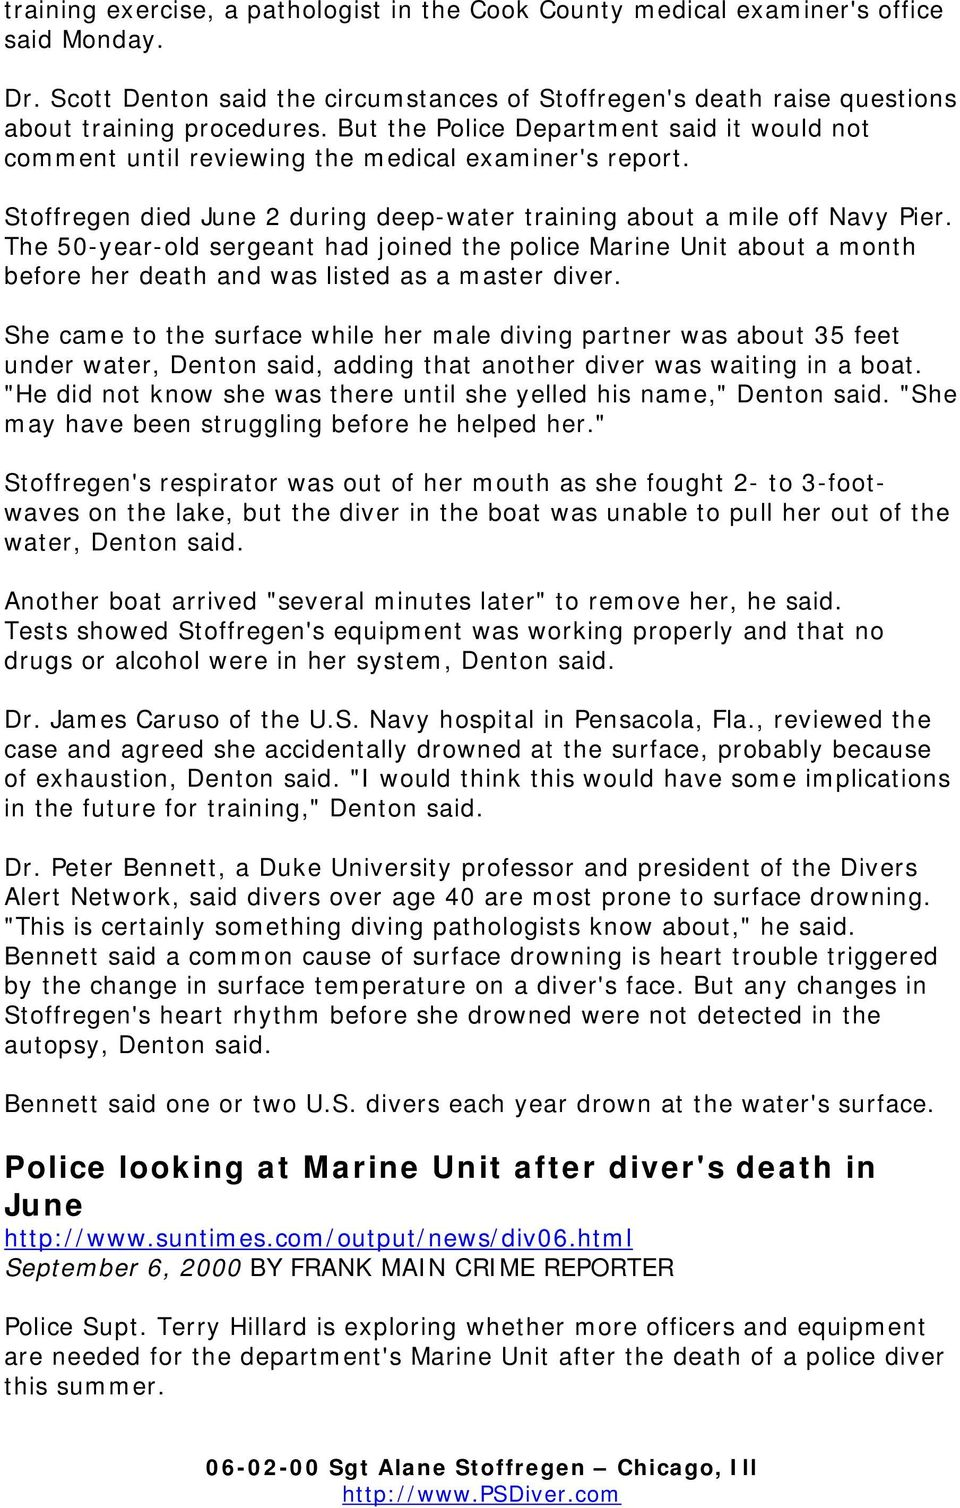 The 50-year-old sergeant had joined the police Marine Unit about a month before her death and was listed as a master diver.